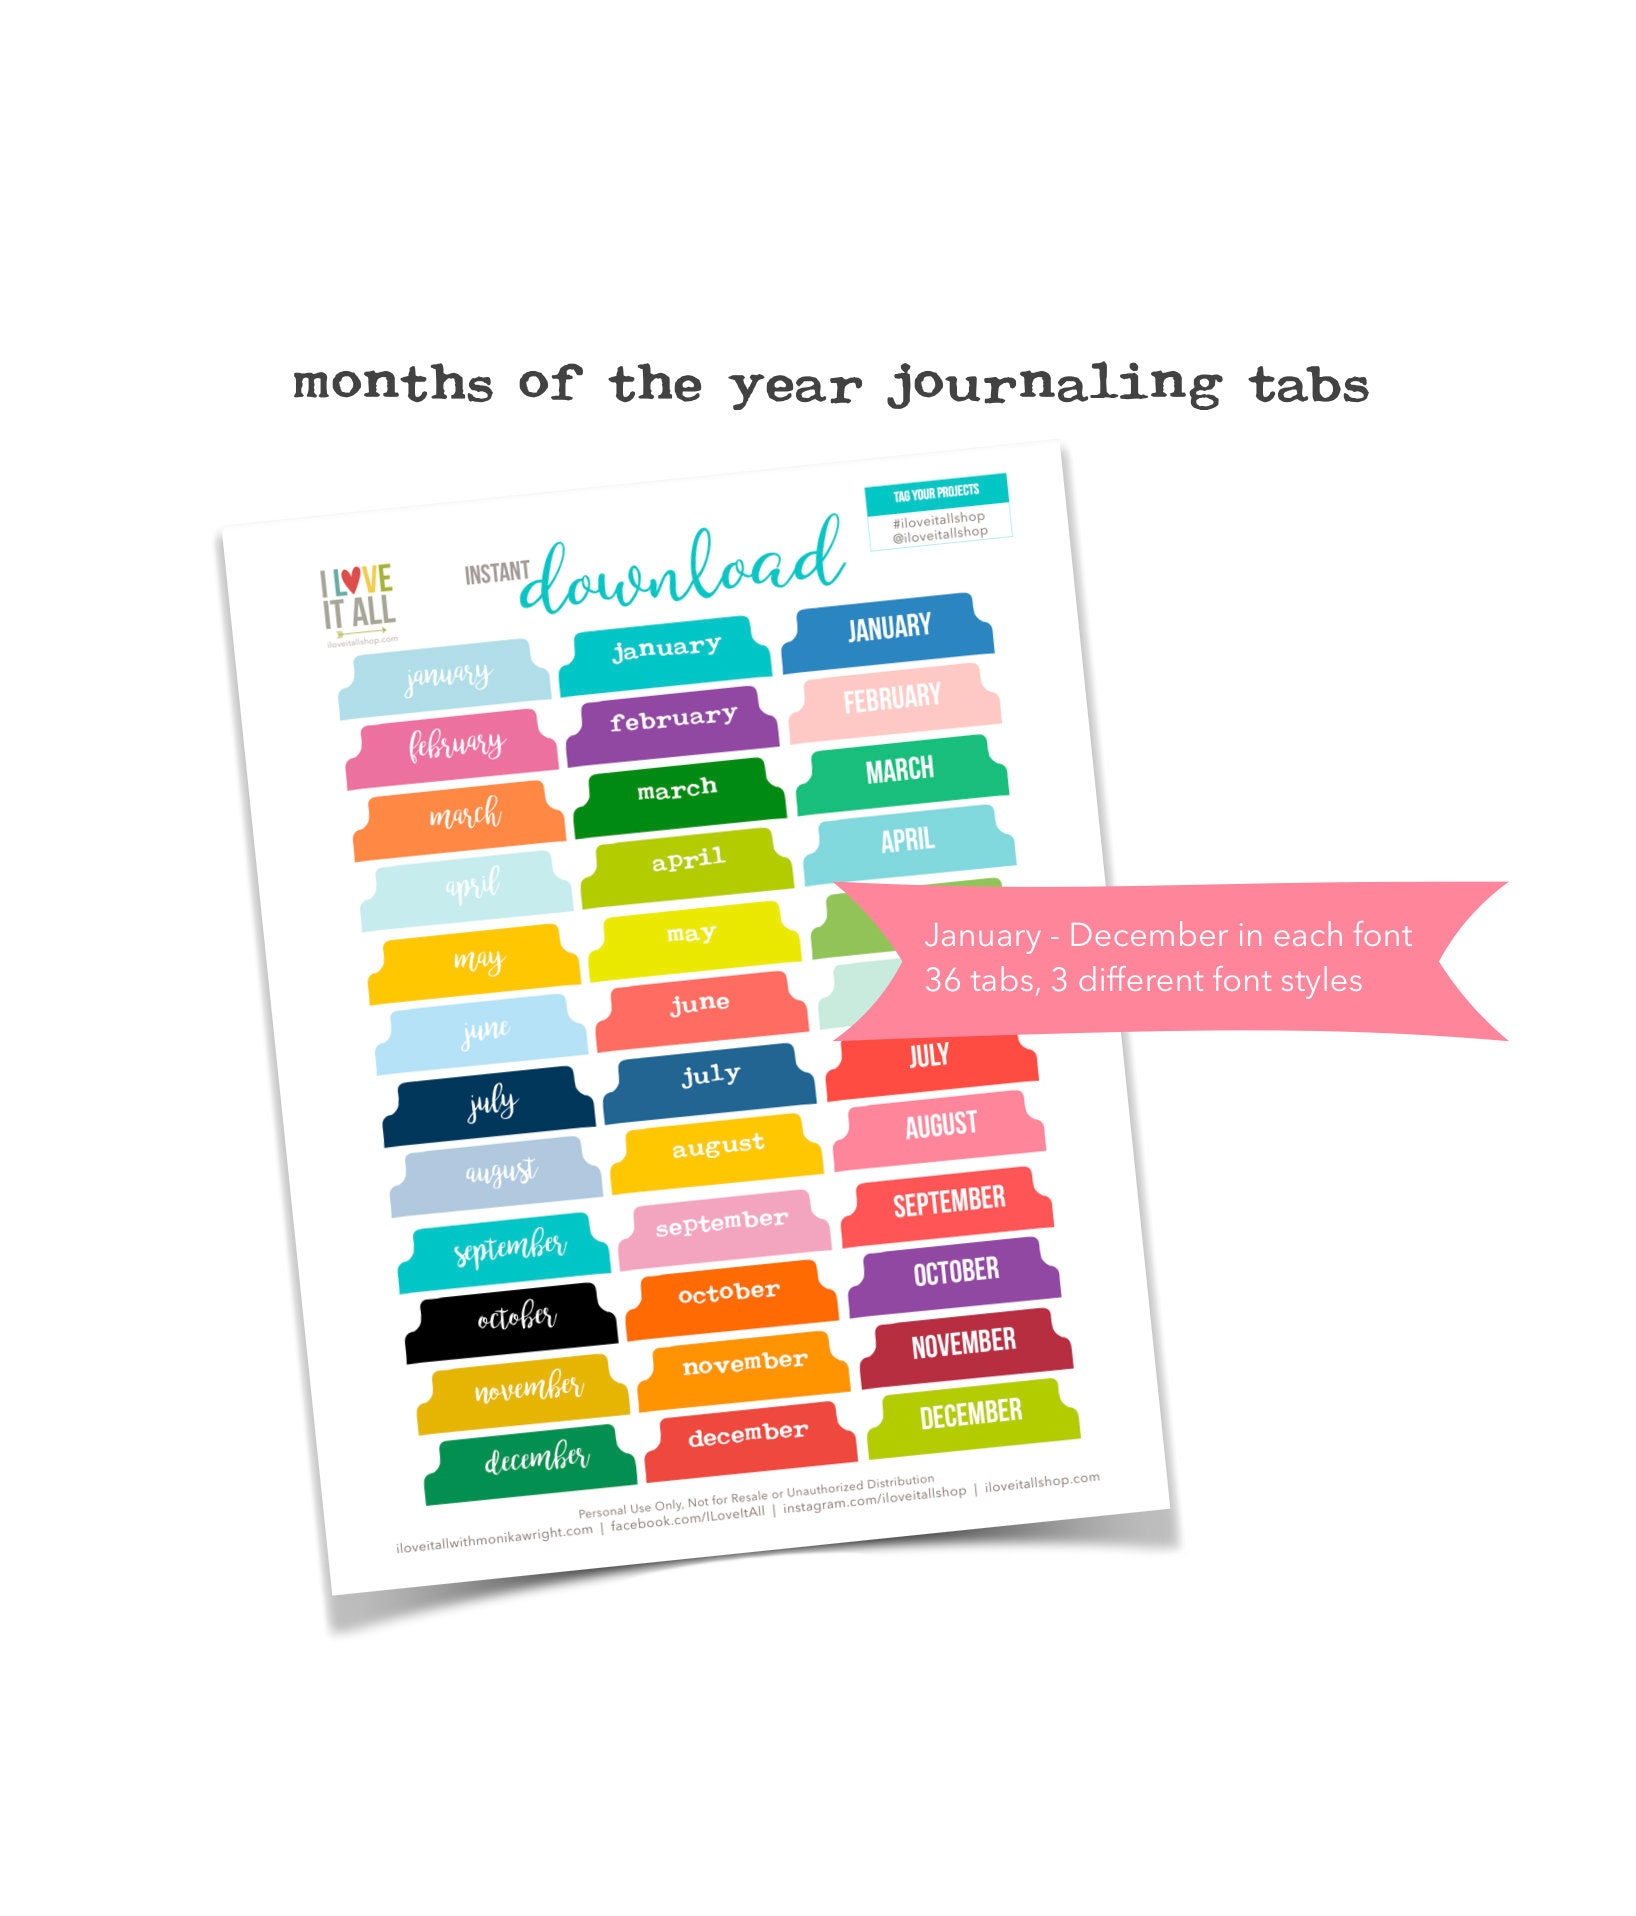 photograph relating to Printable Divider Tabs referred to as Printable Month to month Magazine Tabs, Regular monthly Divider Tabs